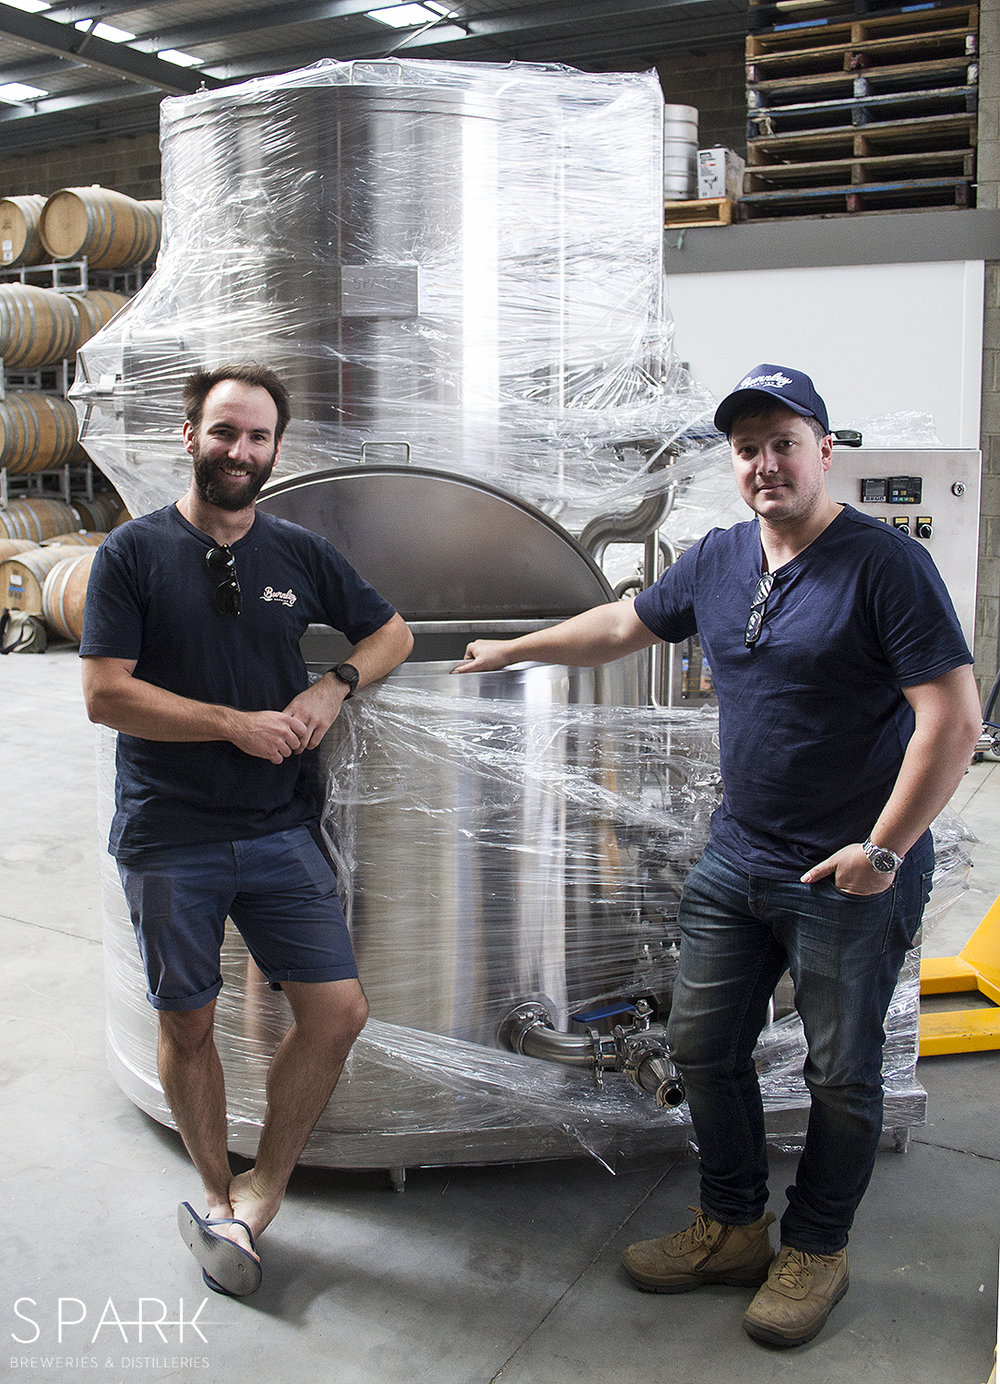 Phil and Neil (L-R) from Burnley brewing in front of their newly delivered SPARK K500 2.0 brewhouse. Looks tiny, but still too heavy for them to lift.